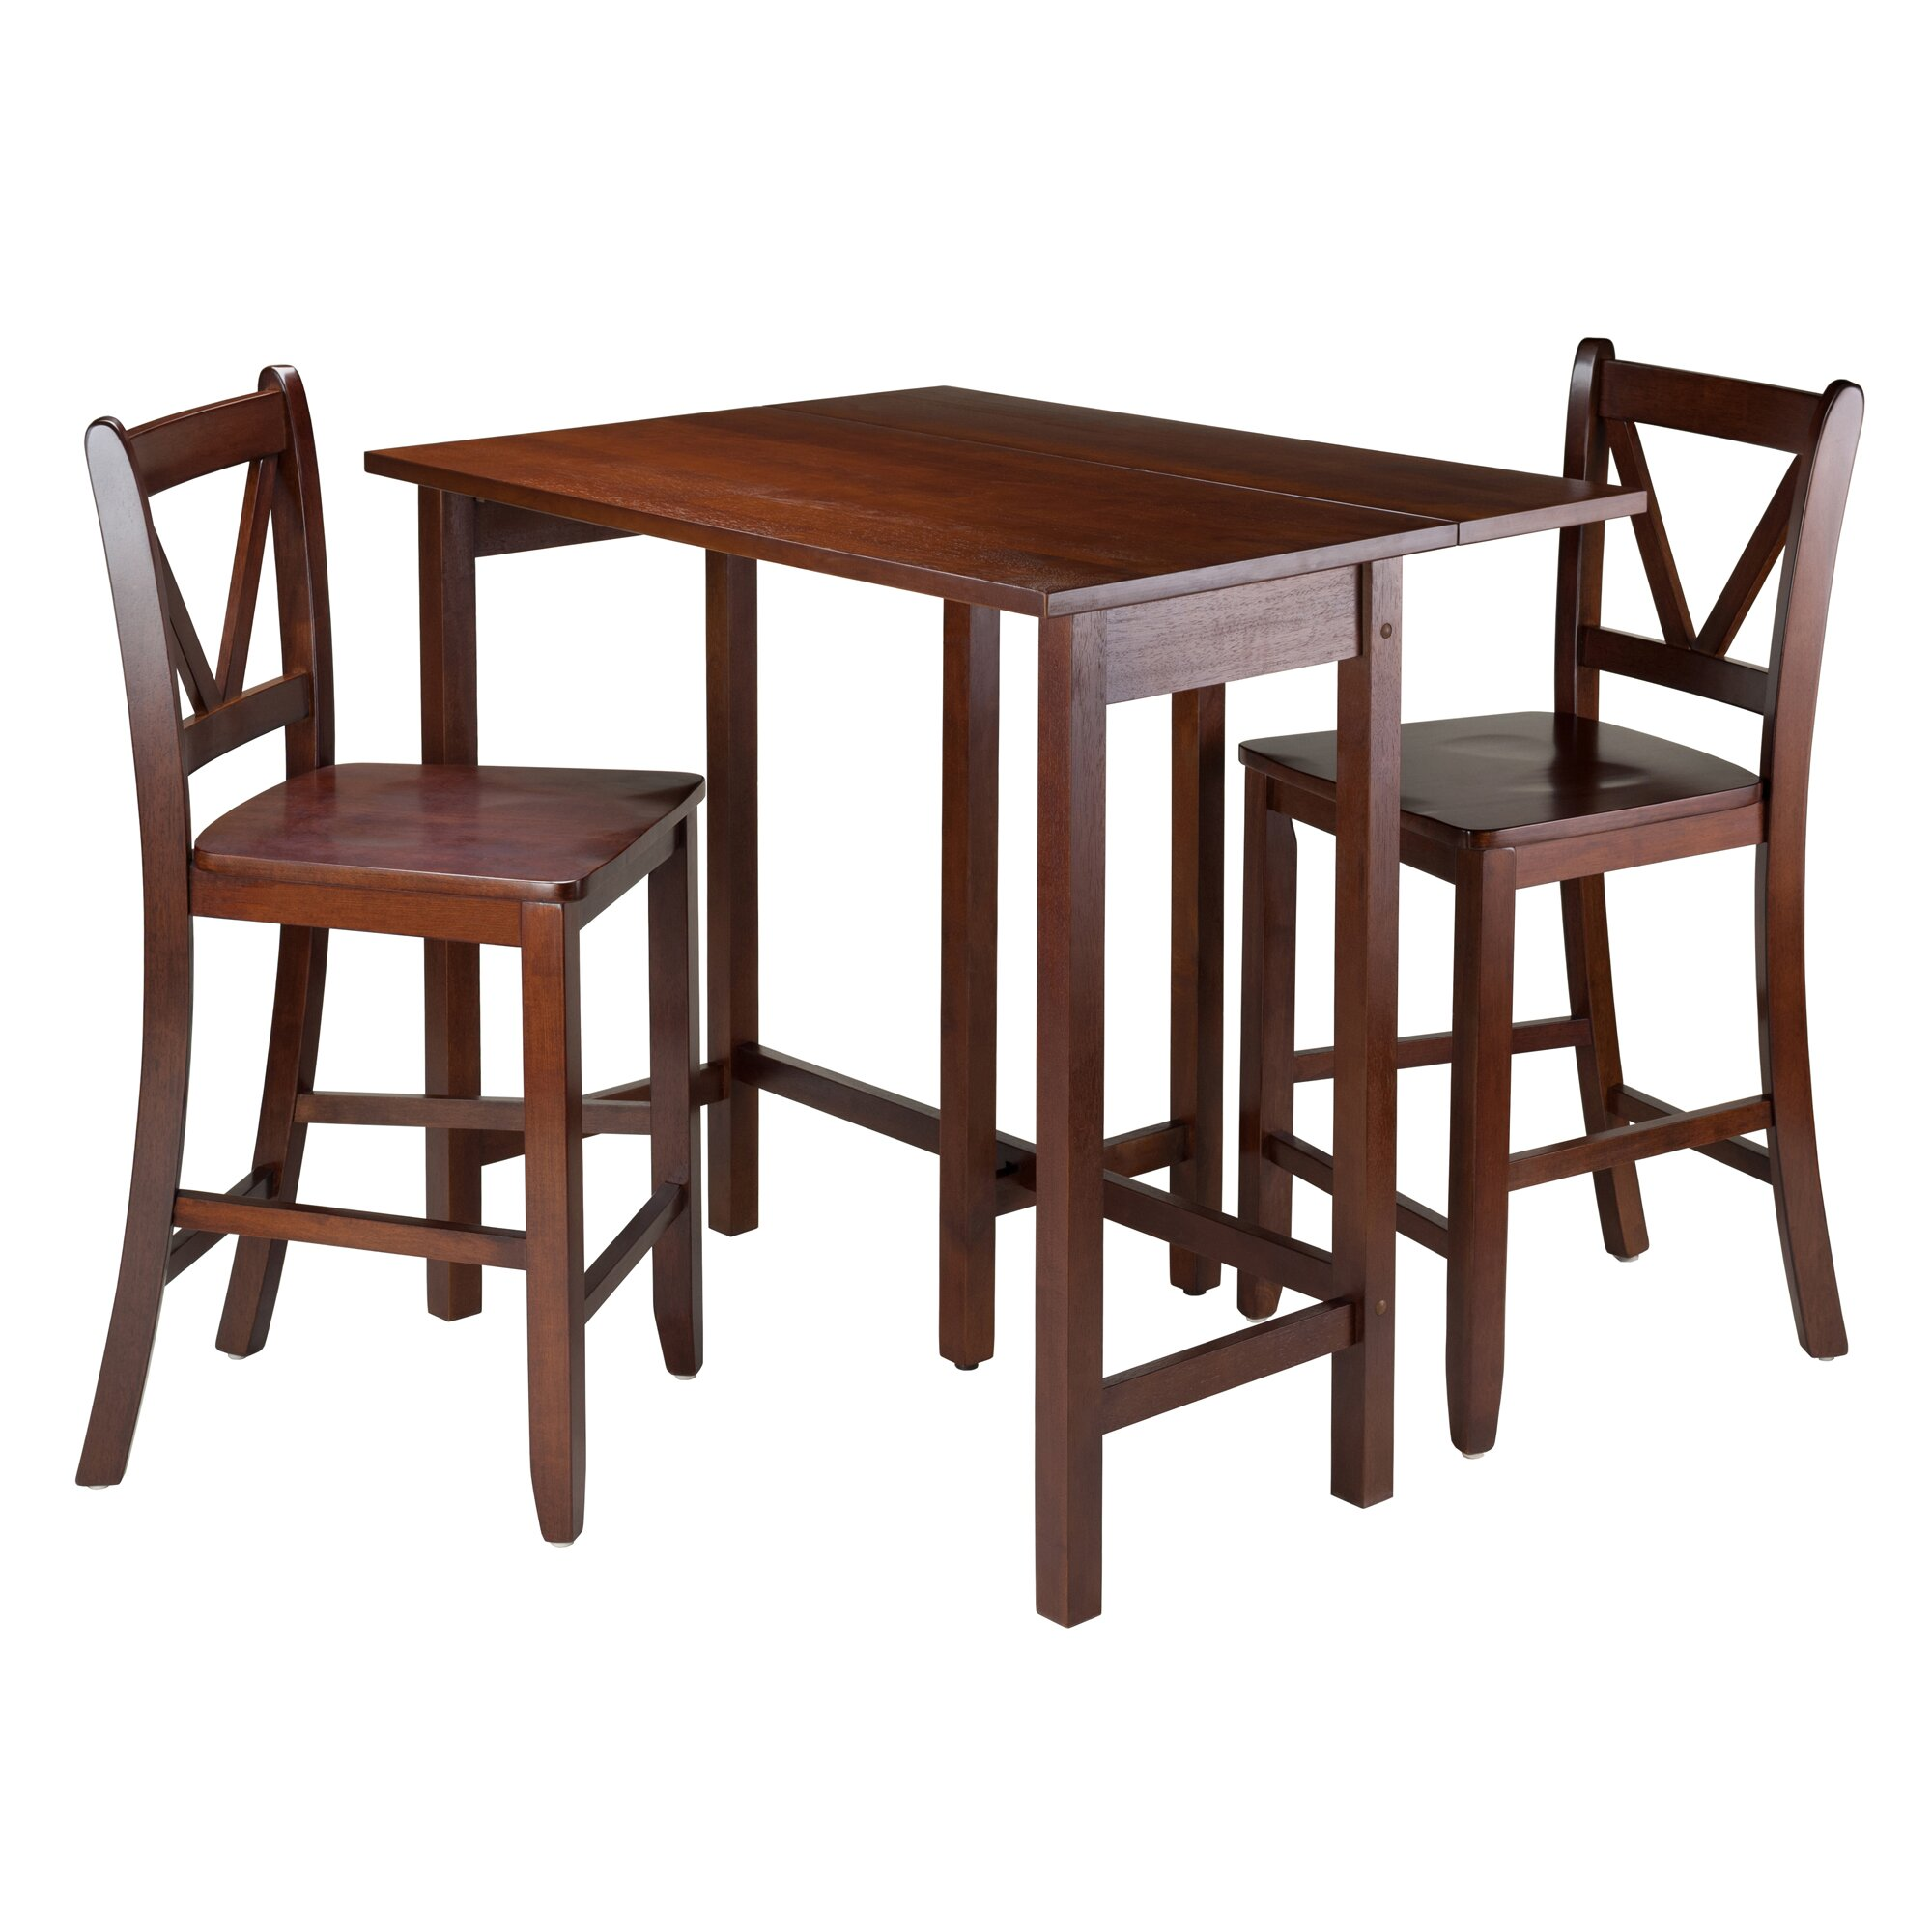 Winsome lynnwood 3 piece dining set reviews for 3 piece dining room set